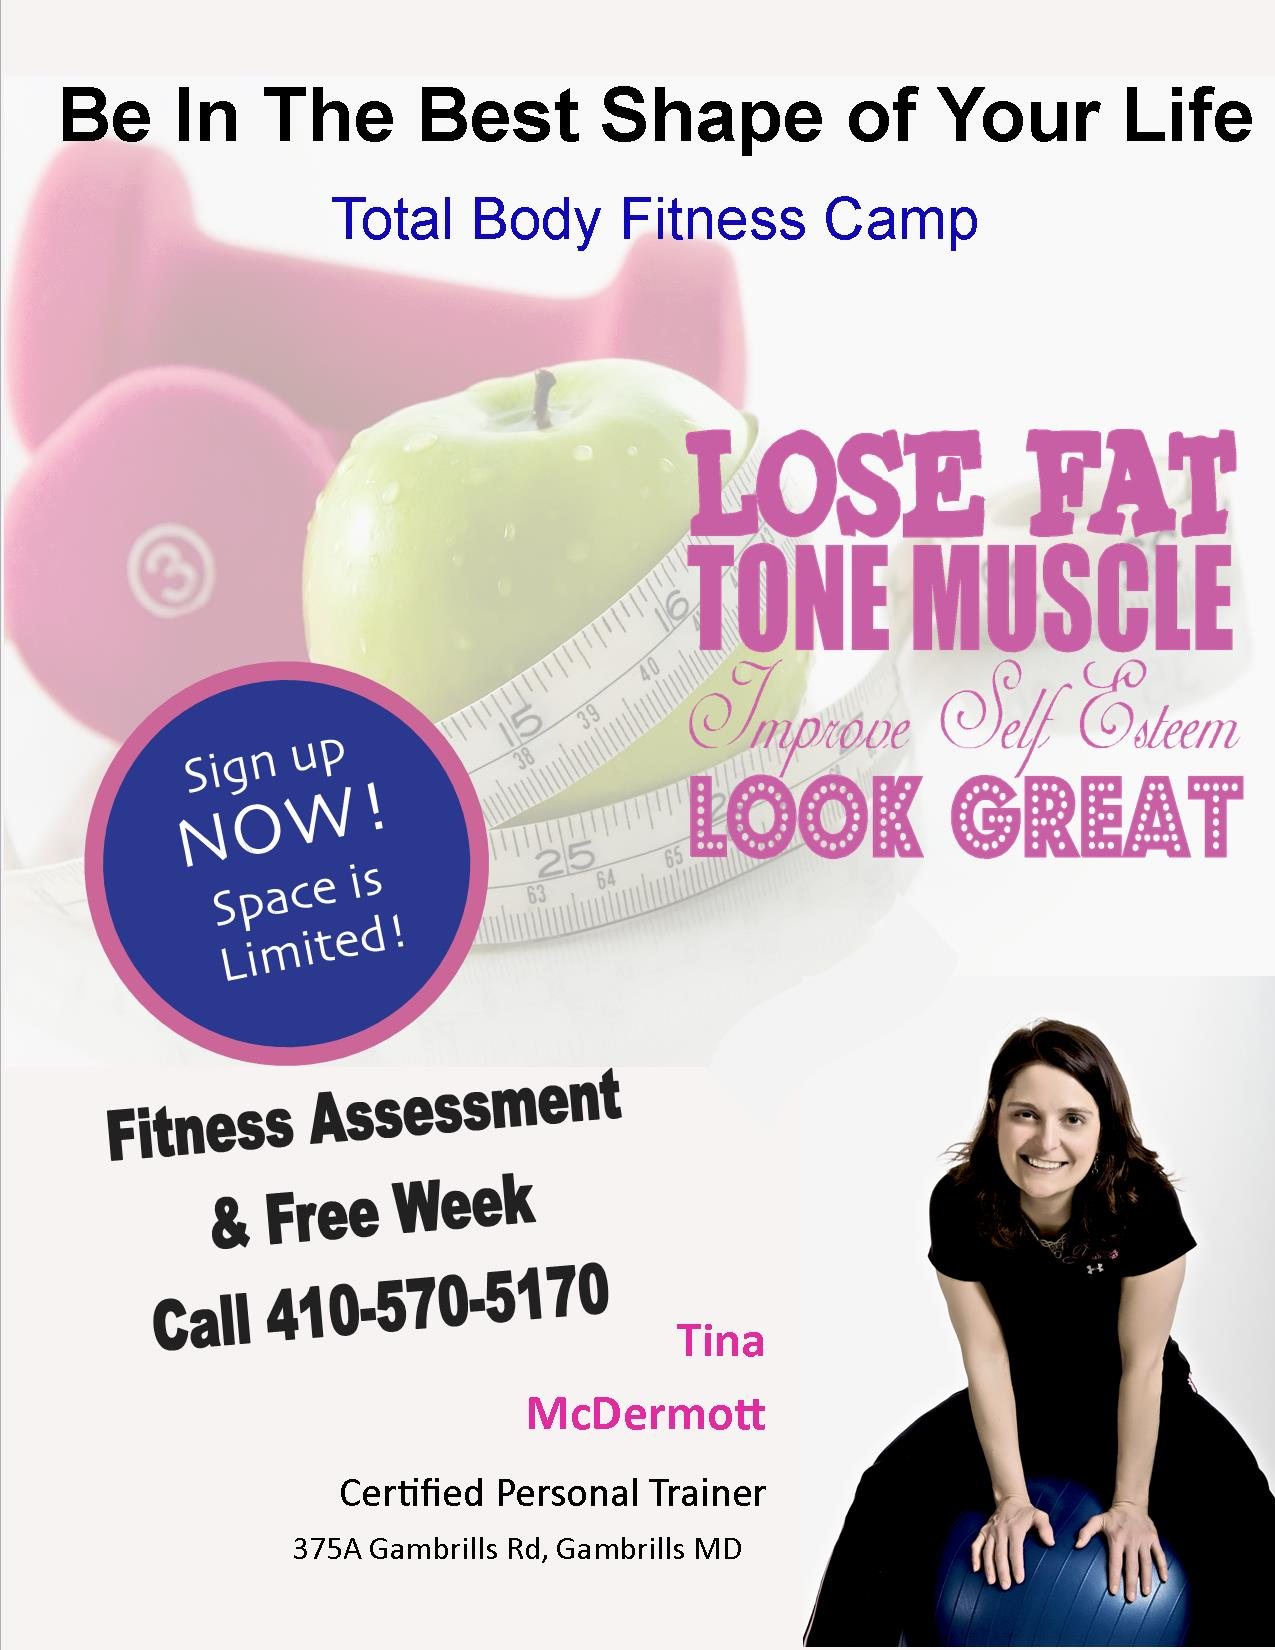 tbfc flyer 2016 tina mcdermott low pressure fitness nutrition